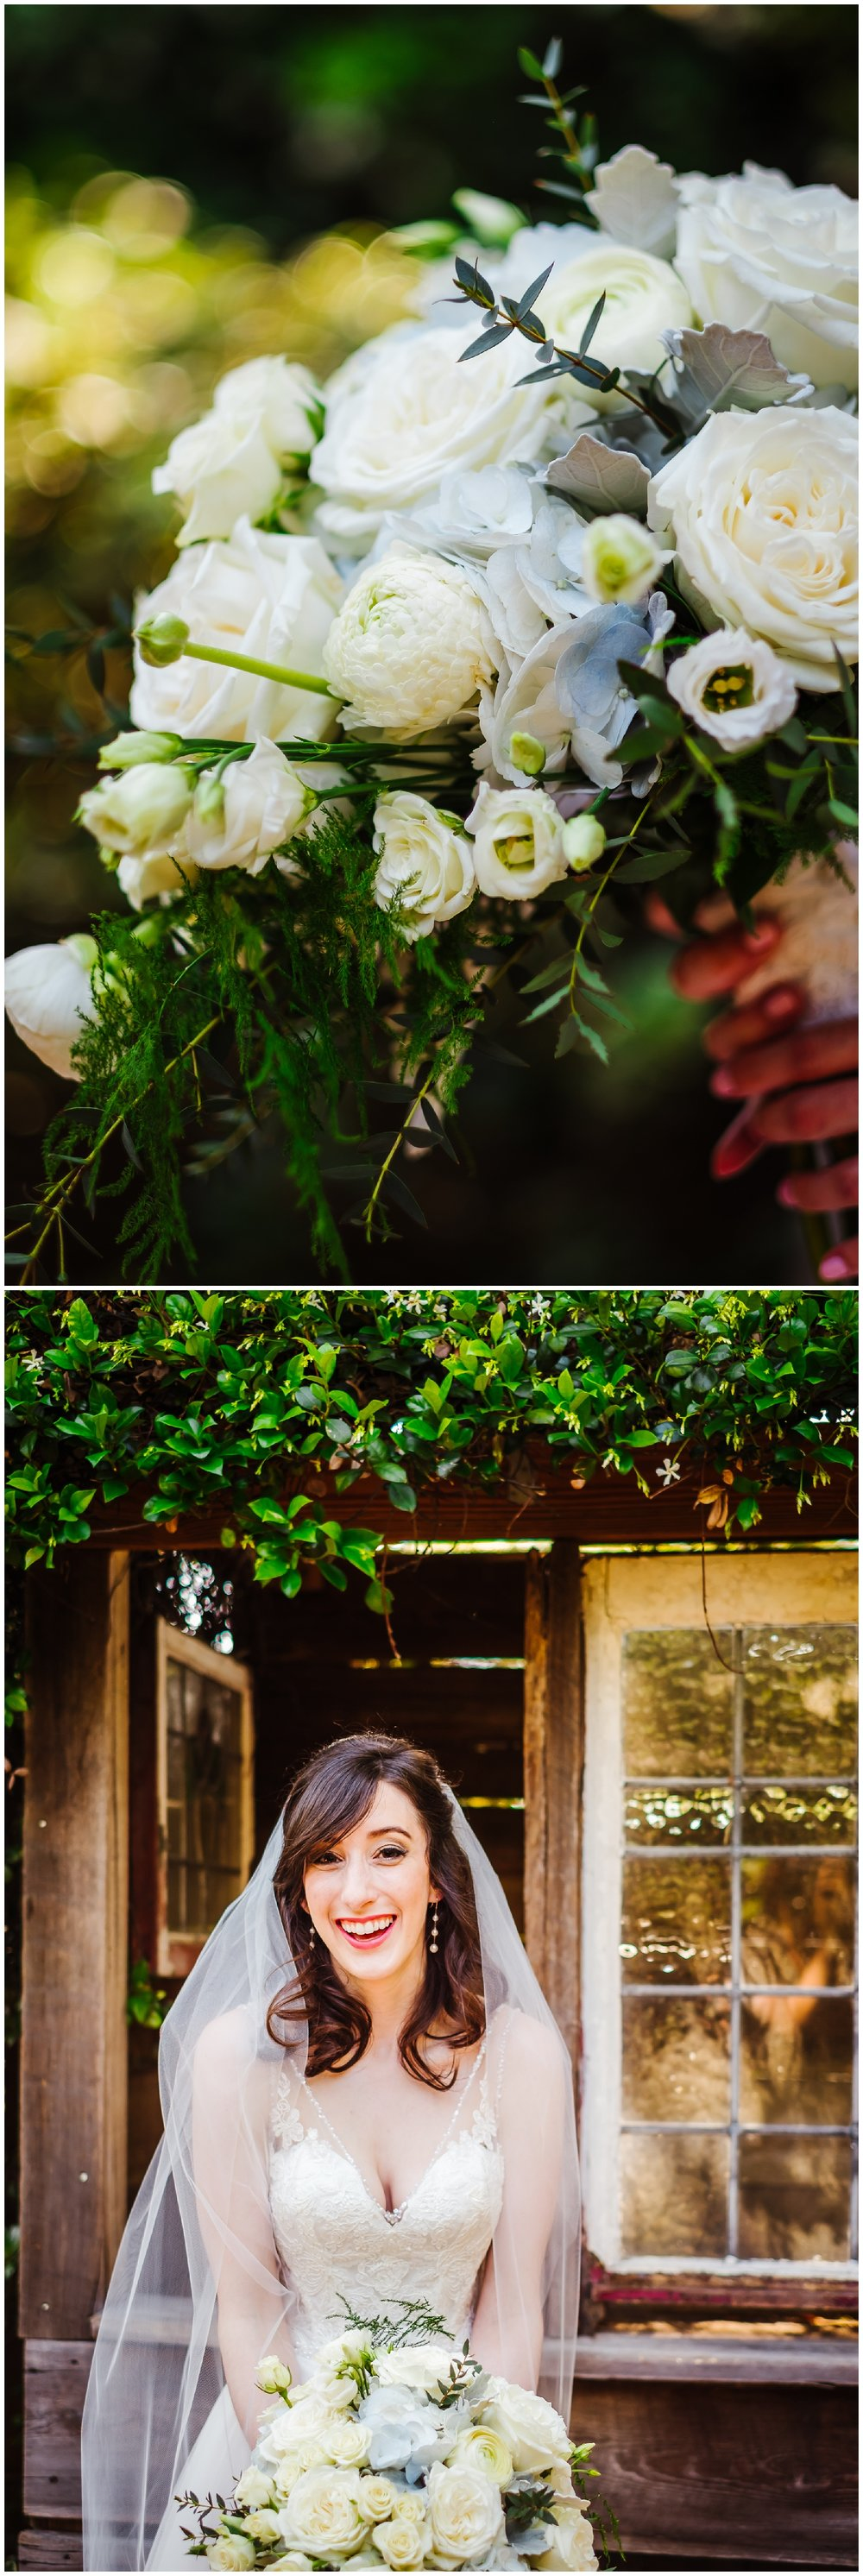 cross-creek-ranch-tampa-wedding-photographer-lush-green-white-florals_0019.jpg